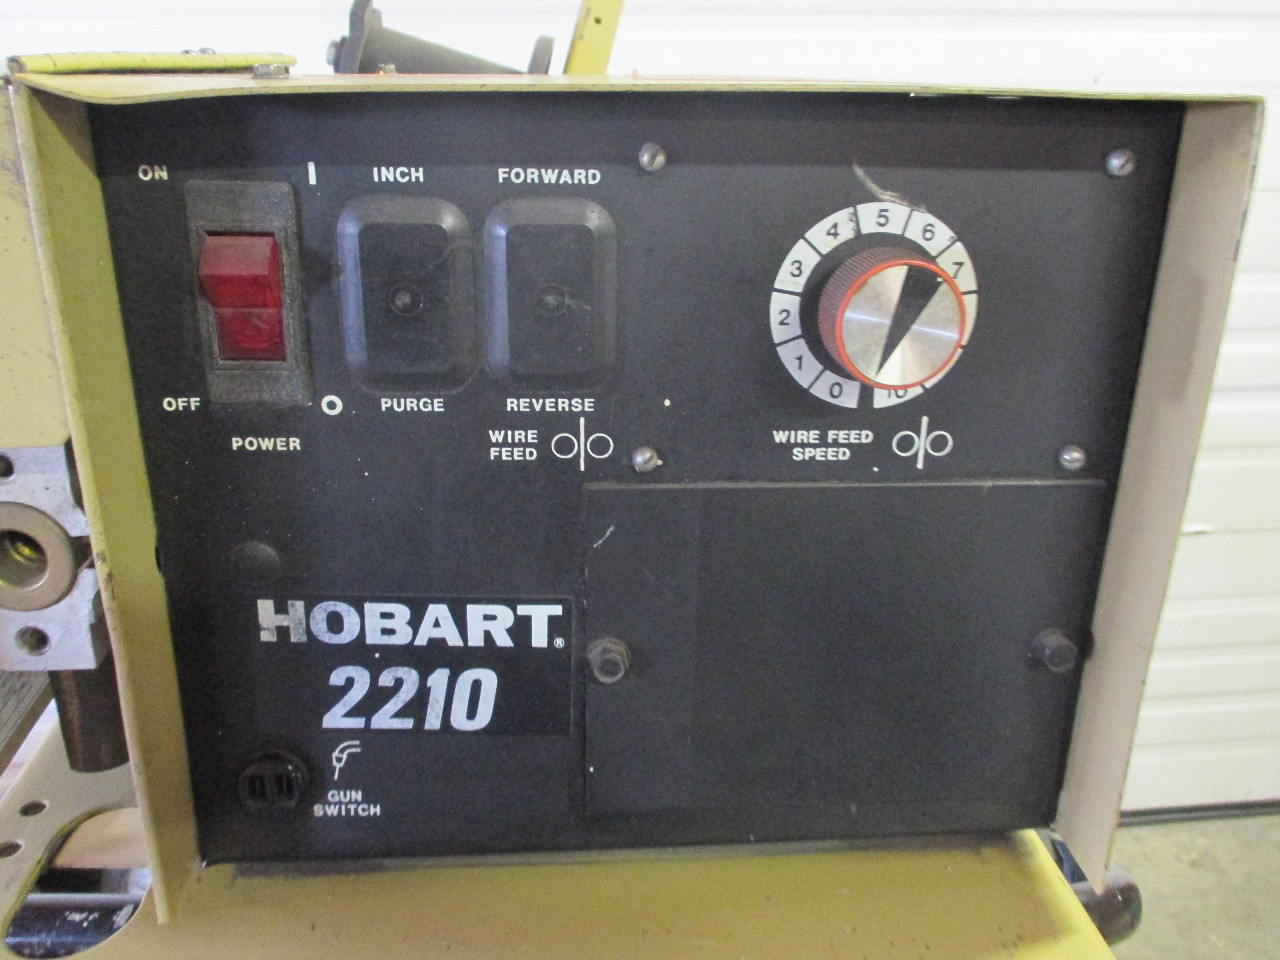 hobart rc 301 welder 300 amp with hobart 2210 wire feeder daves rh davesindustrialsurplus com